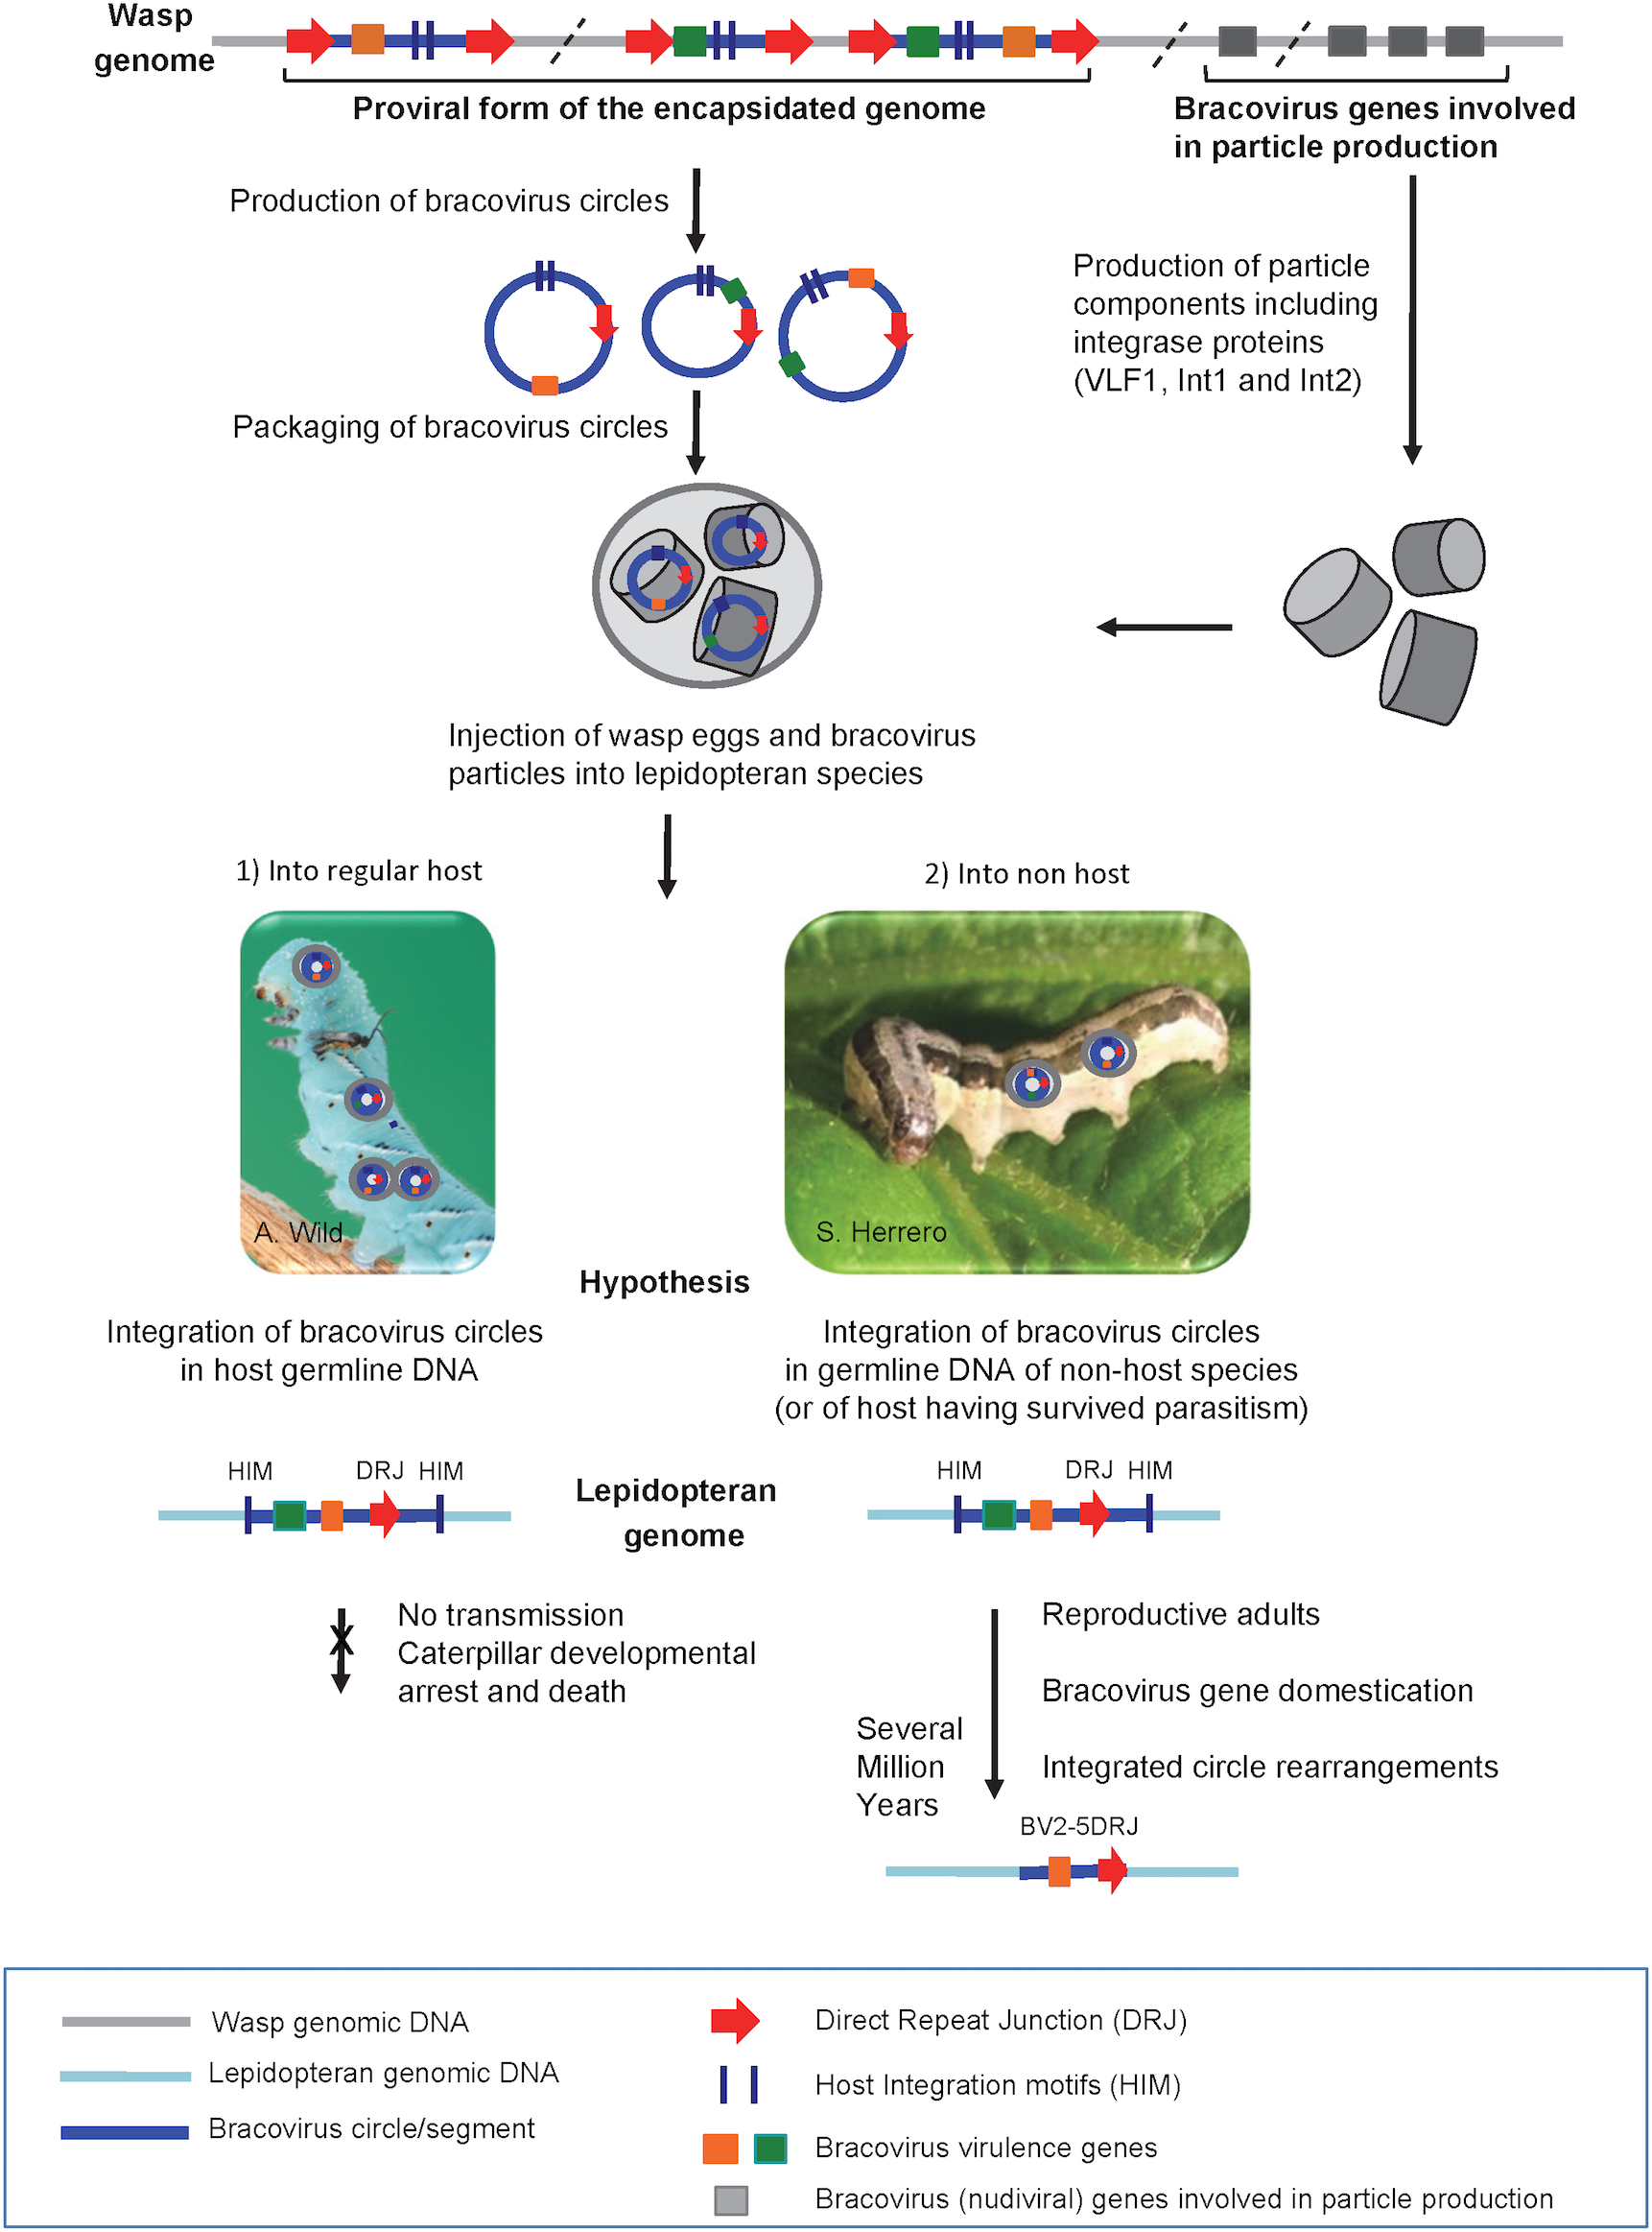 Production of bracovirus particles by the parasitoid wasp <i>C</i>. <i>congregata</i> and hypothesis on the process leading to transfer of bracovirus sequences to lepidopteran genomes.